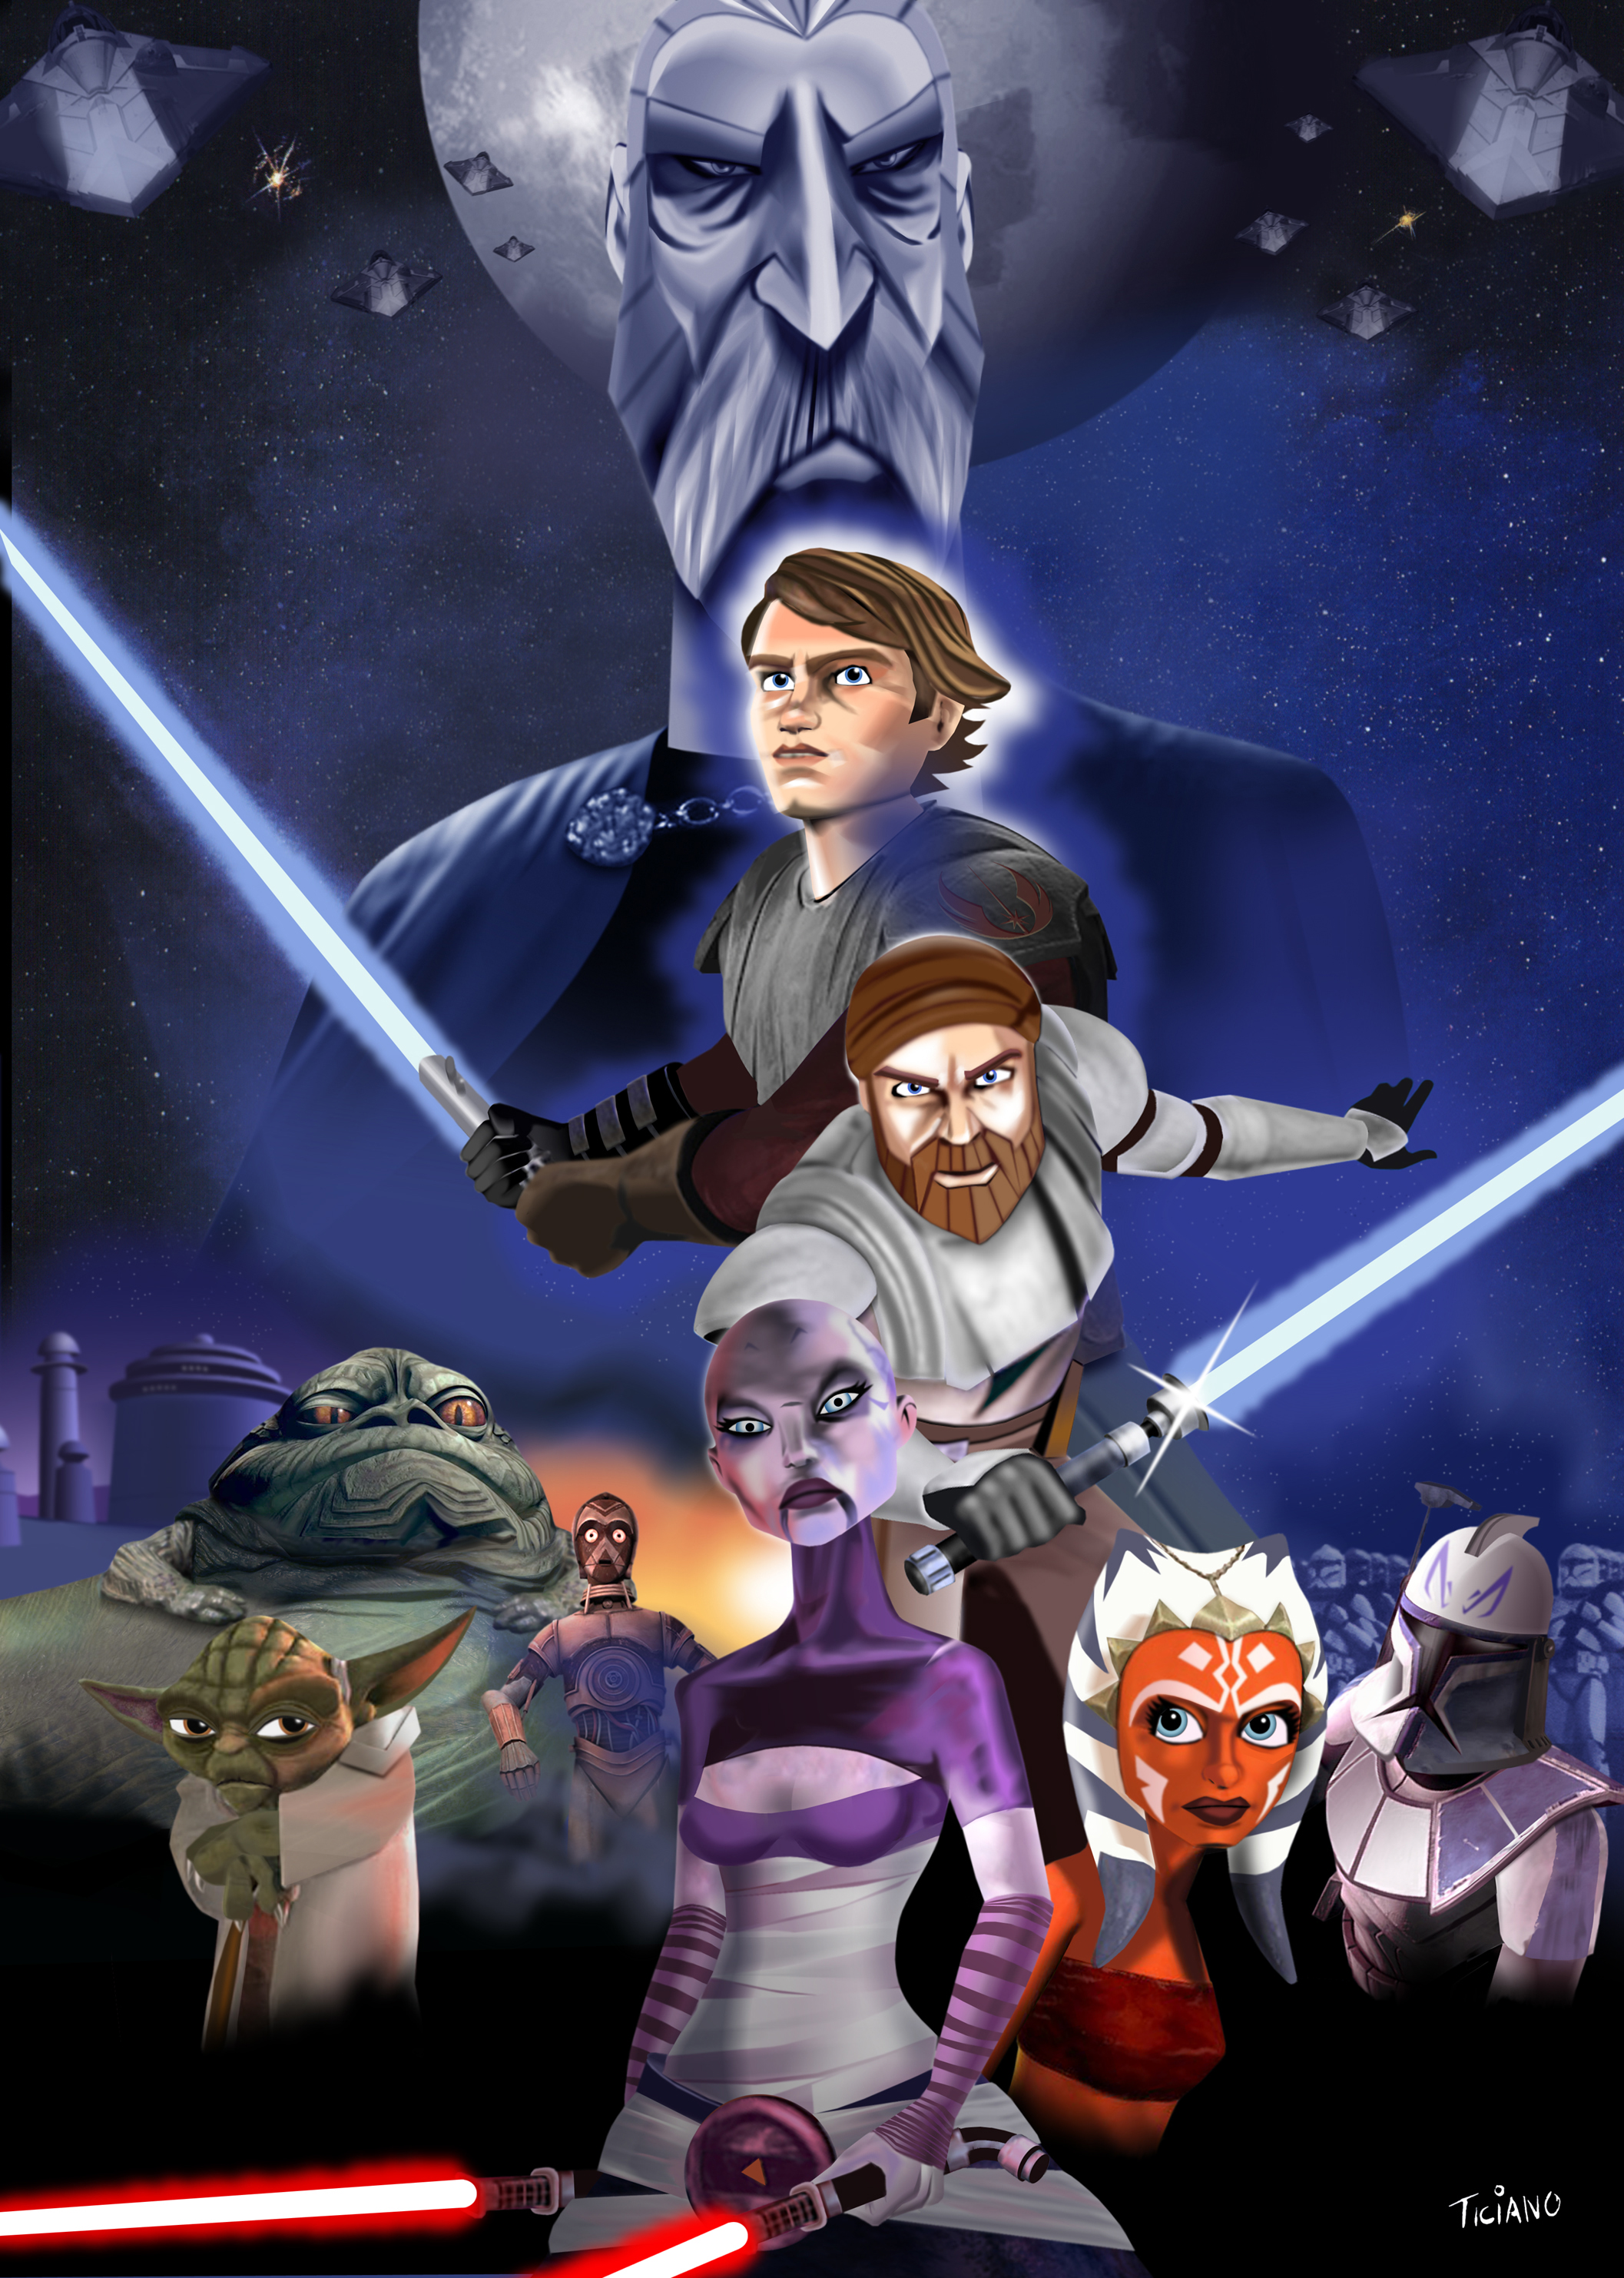 The Clone Wars by Ticiano